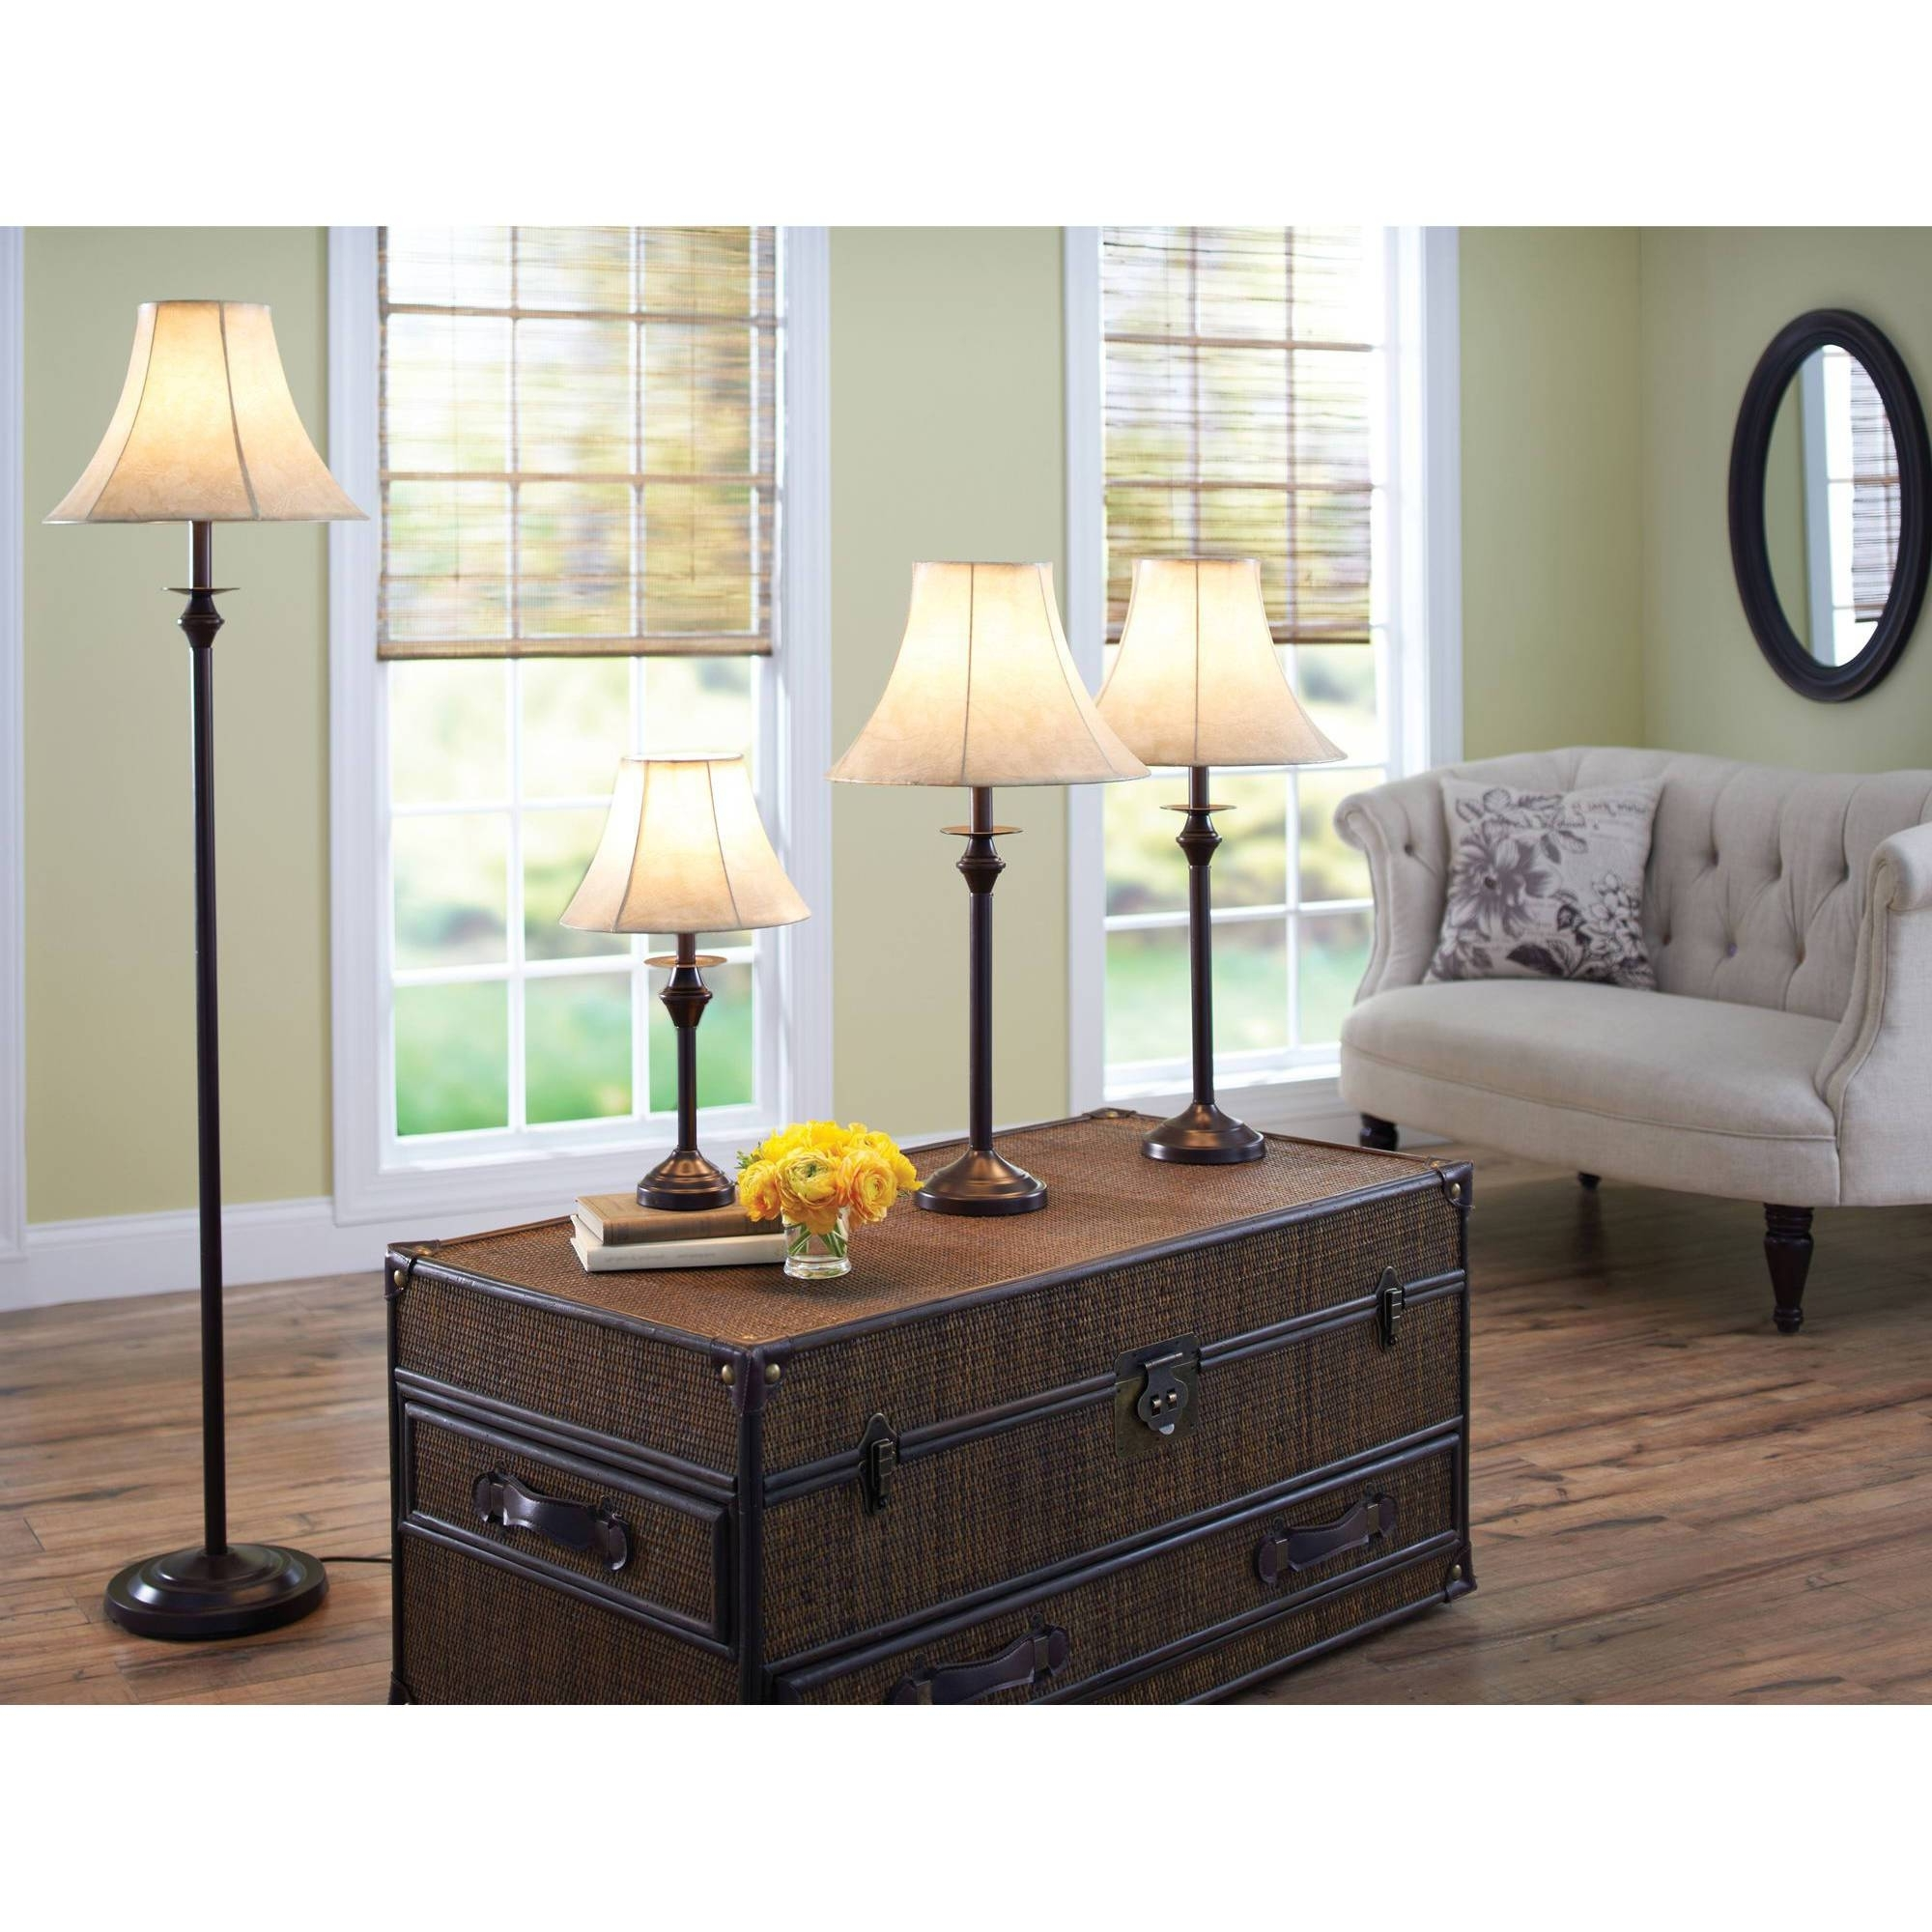 Favorite Bronze Table Lamps For Living Room Home Design Plan, Bronze Table Pertaining To Bronze Living Room Table Lamps (View 8 of 20)